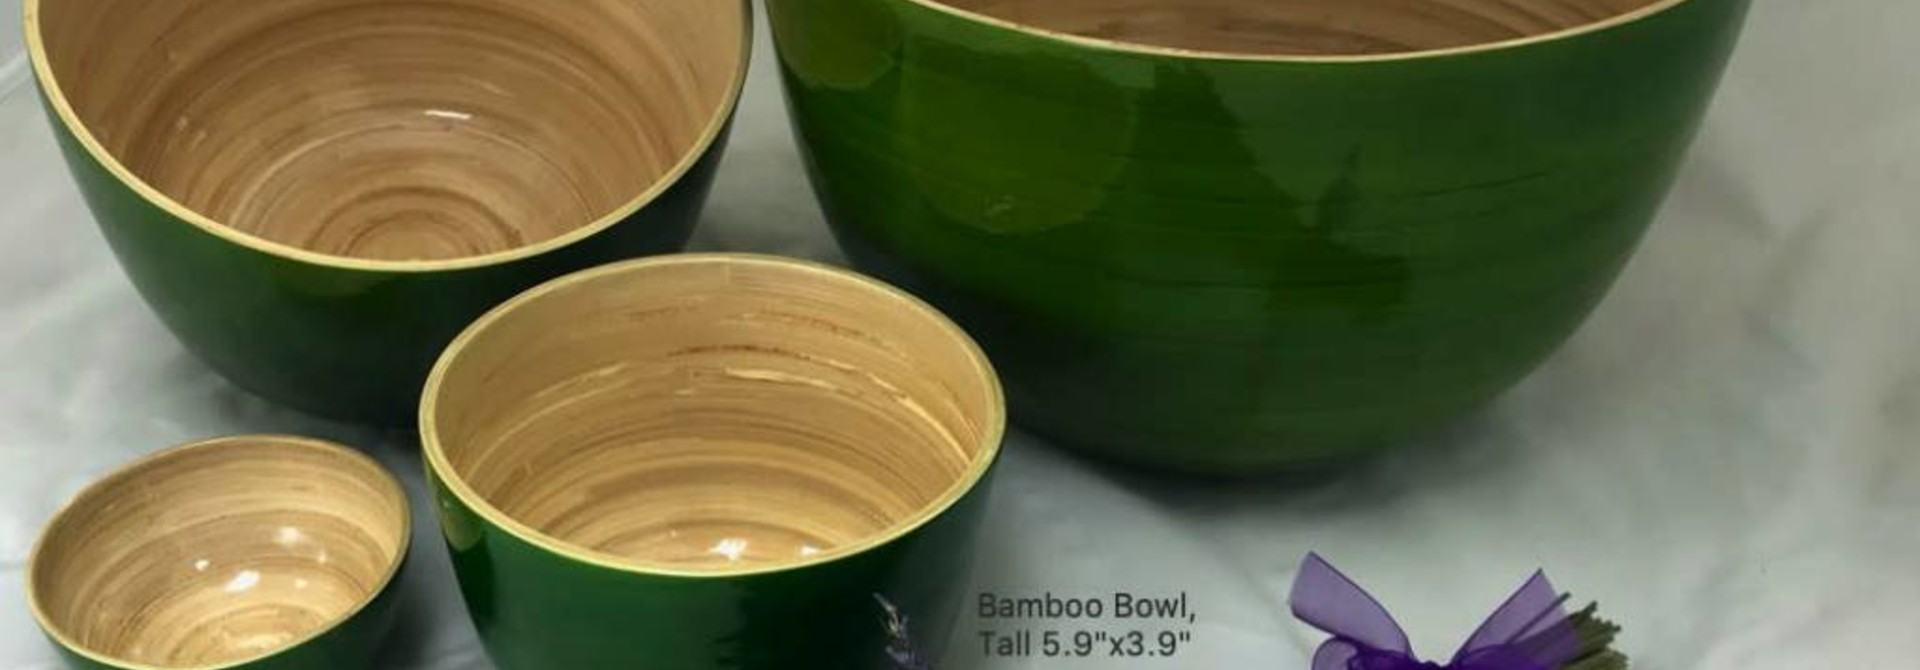 "Bamboo Bowl, Tall 5.9""x3.9"""